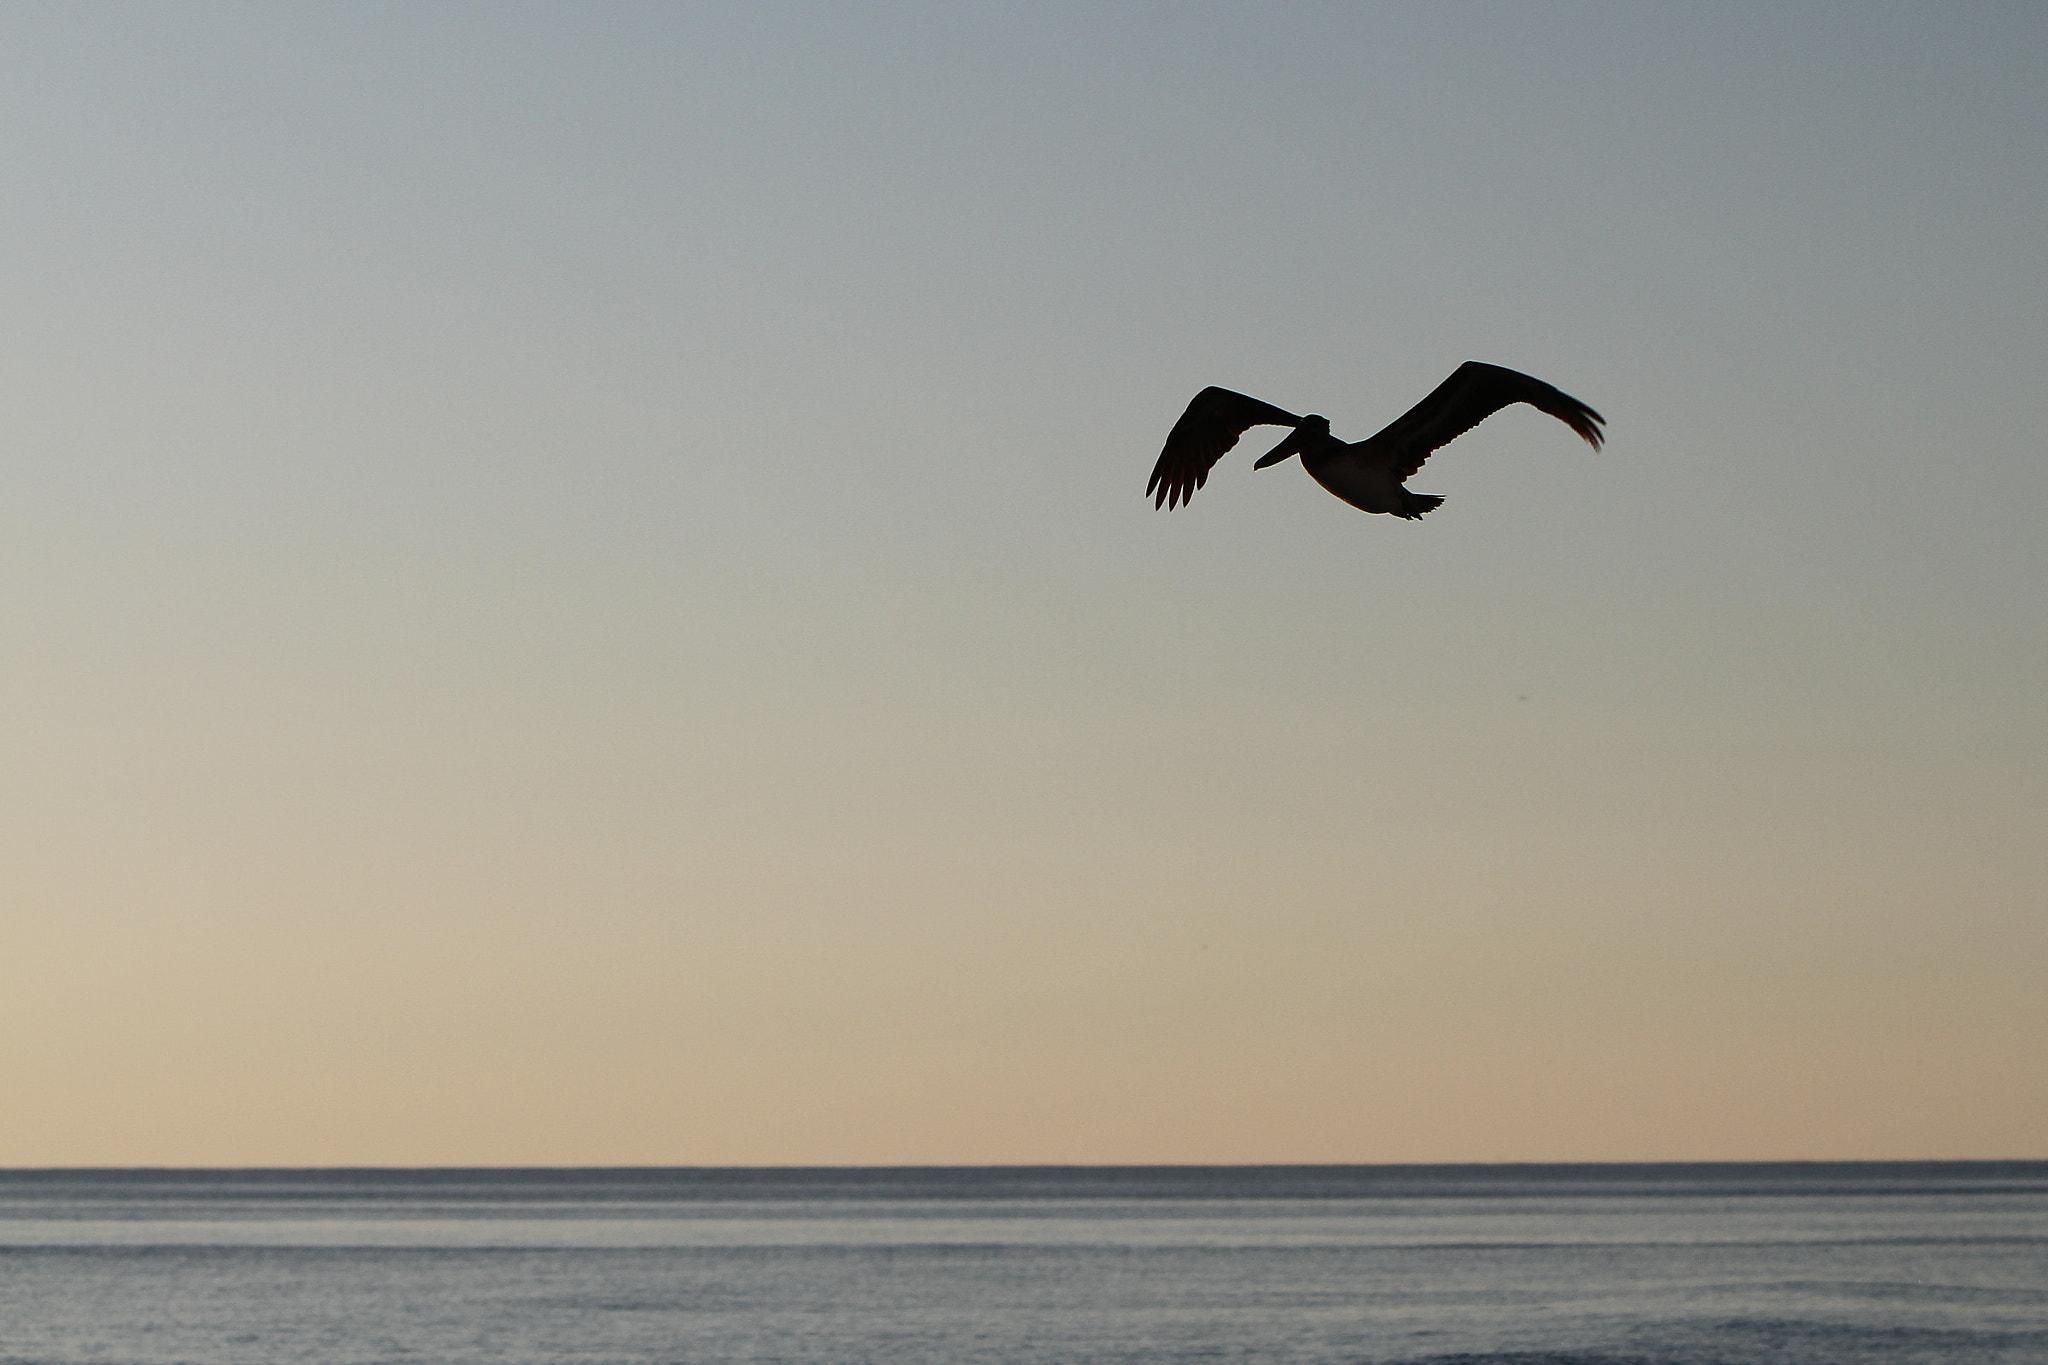 Photograph Pelican Silouette by Michael Thompson on 500px